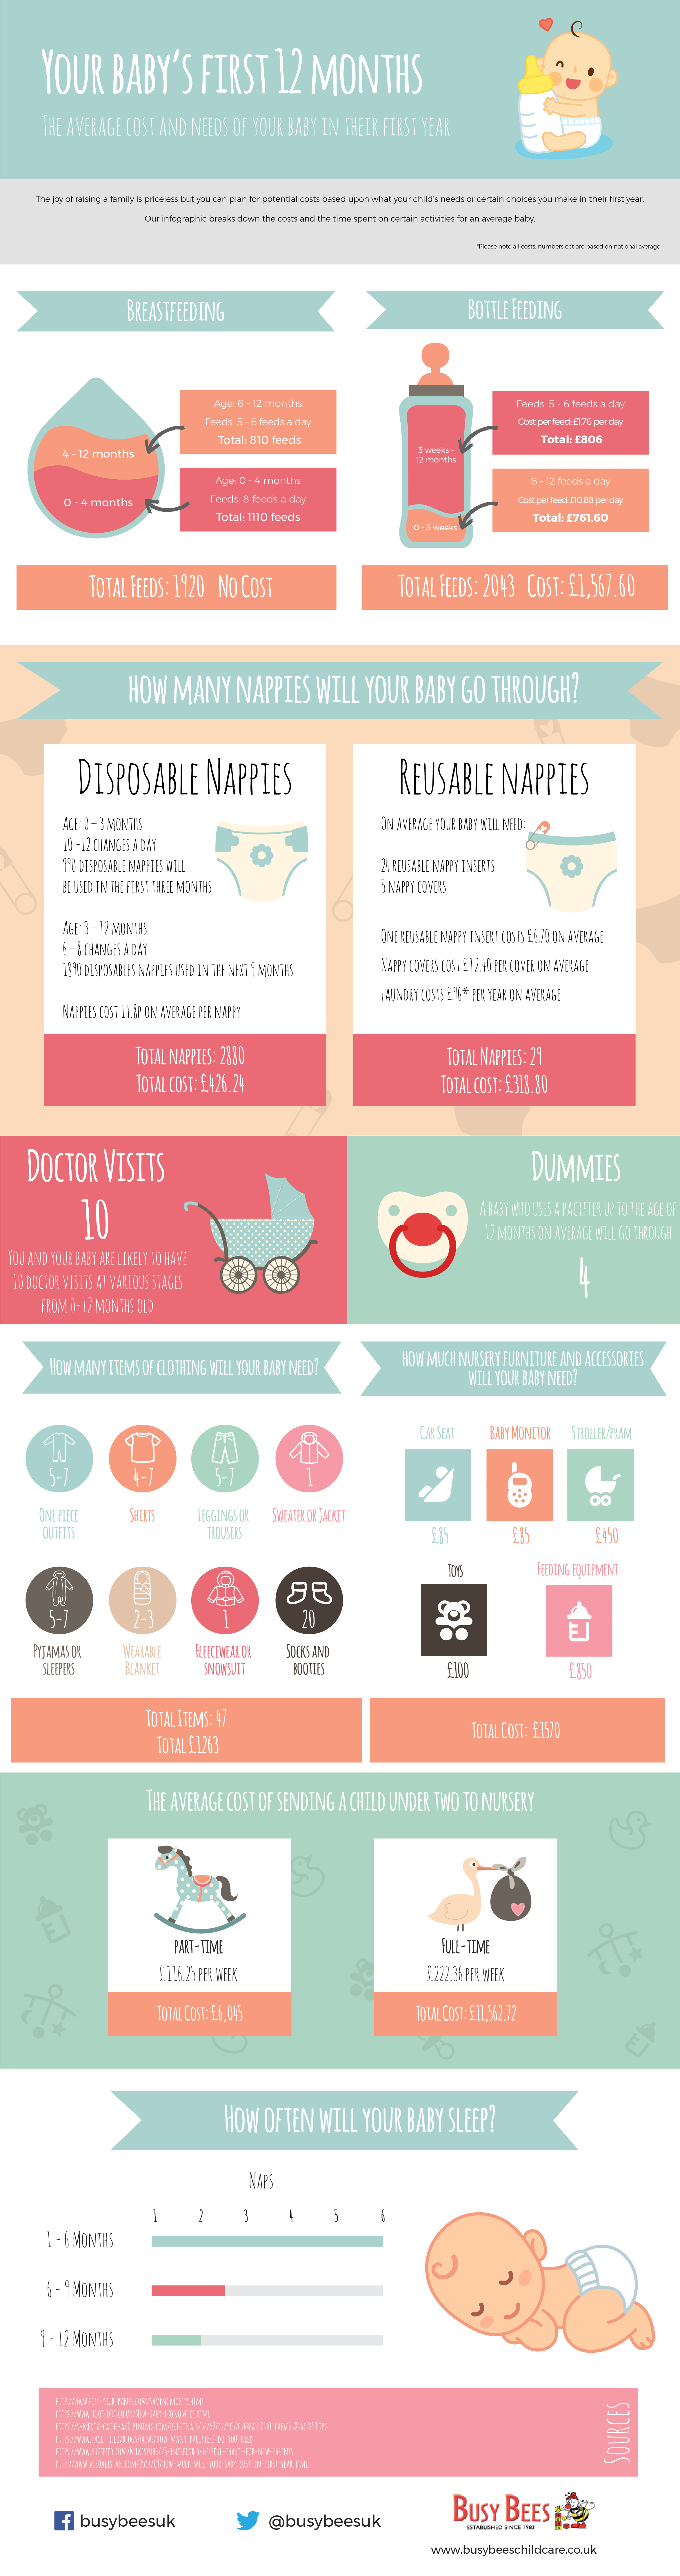 The Average Cost of a Baby's First Year